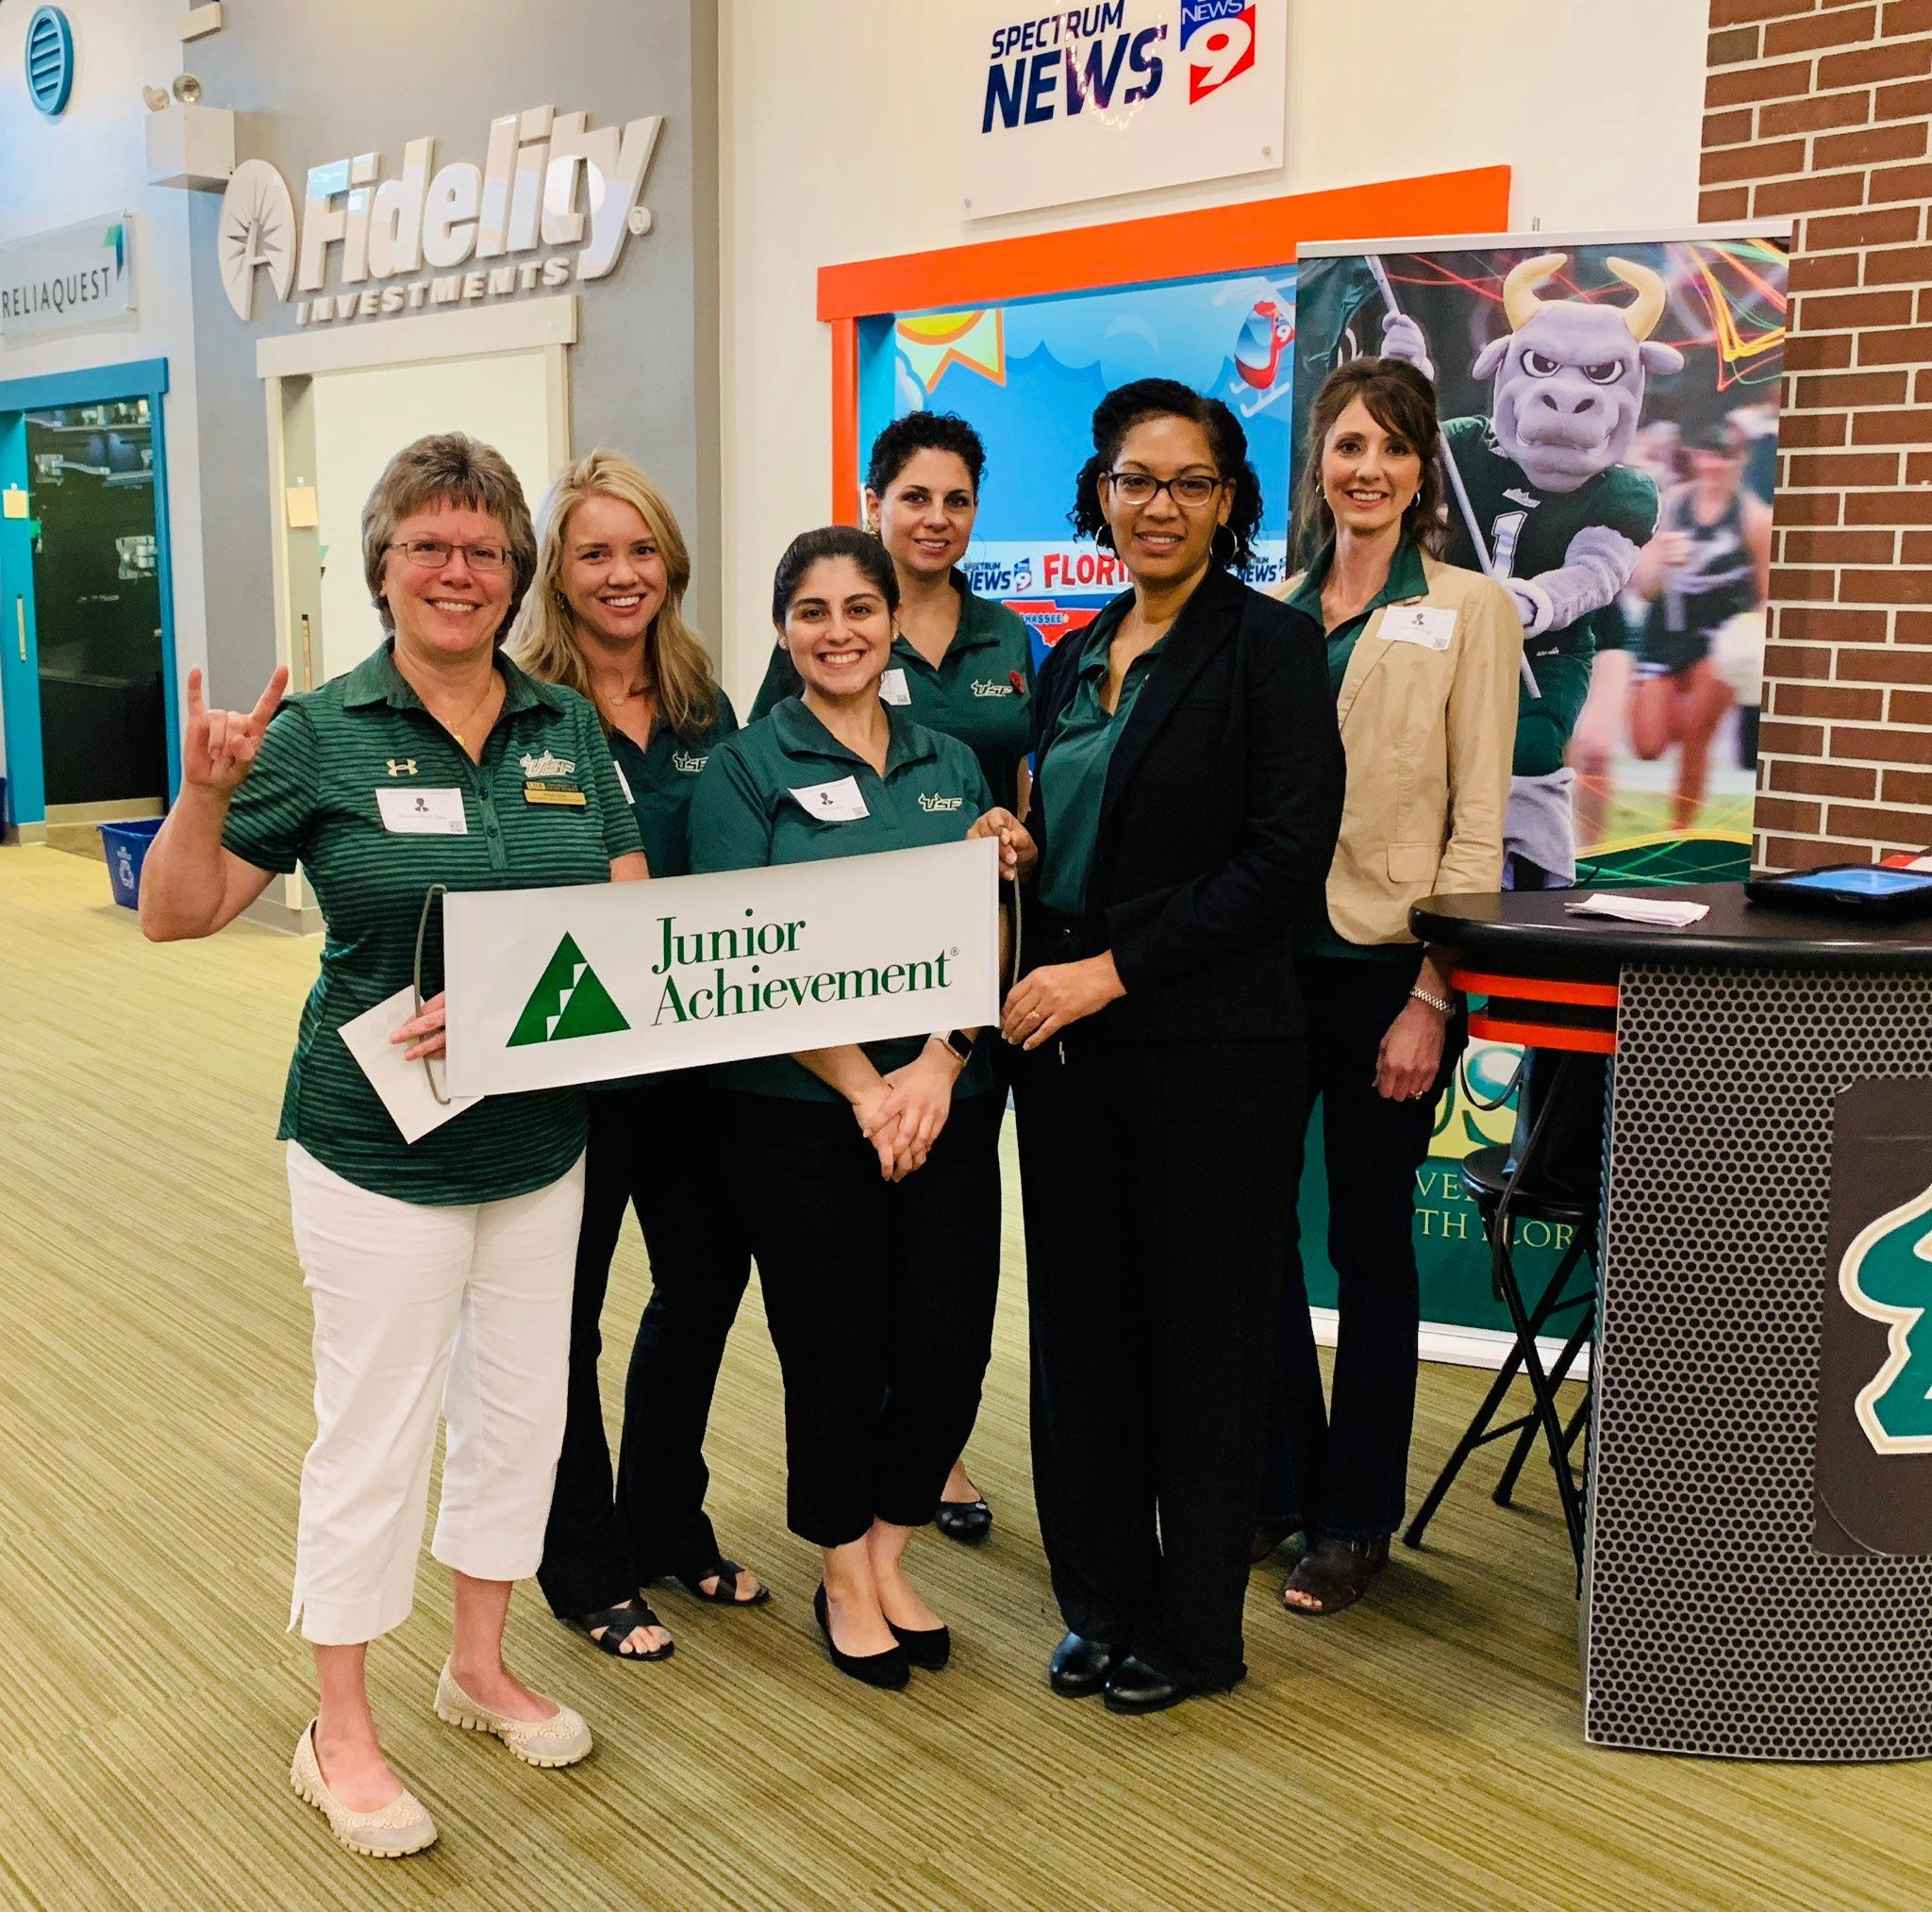 Group photo of Administrative Services Business Center employees holding a sign that shows the Junior Achievement logo while volunteering at Biztown.